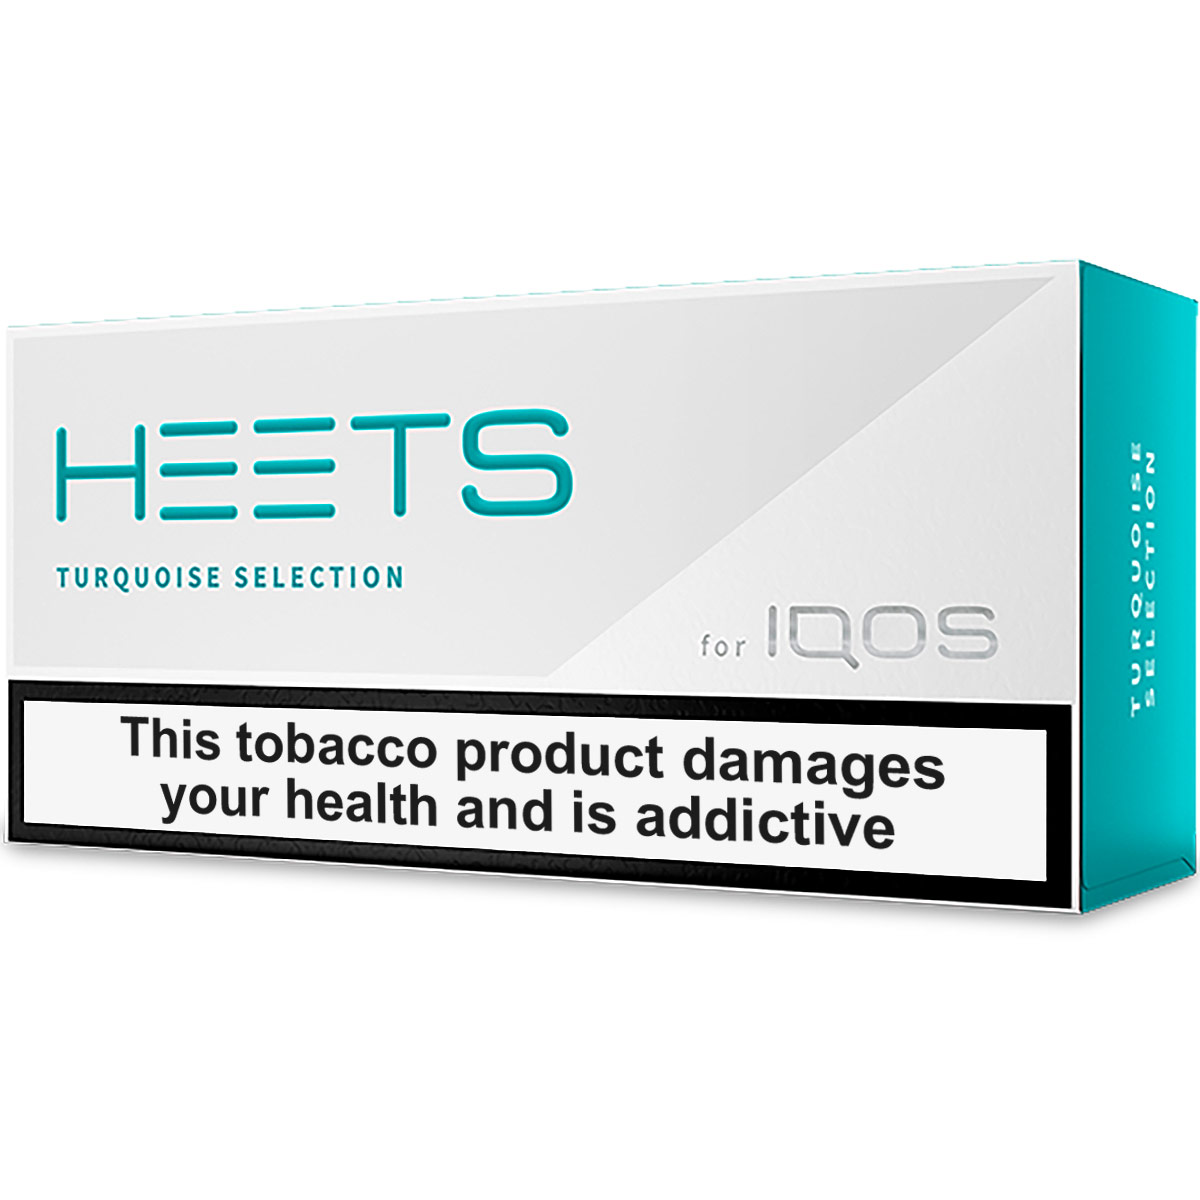 Heets - Turquoise Selection